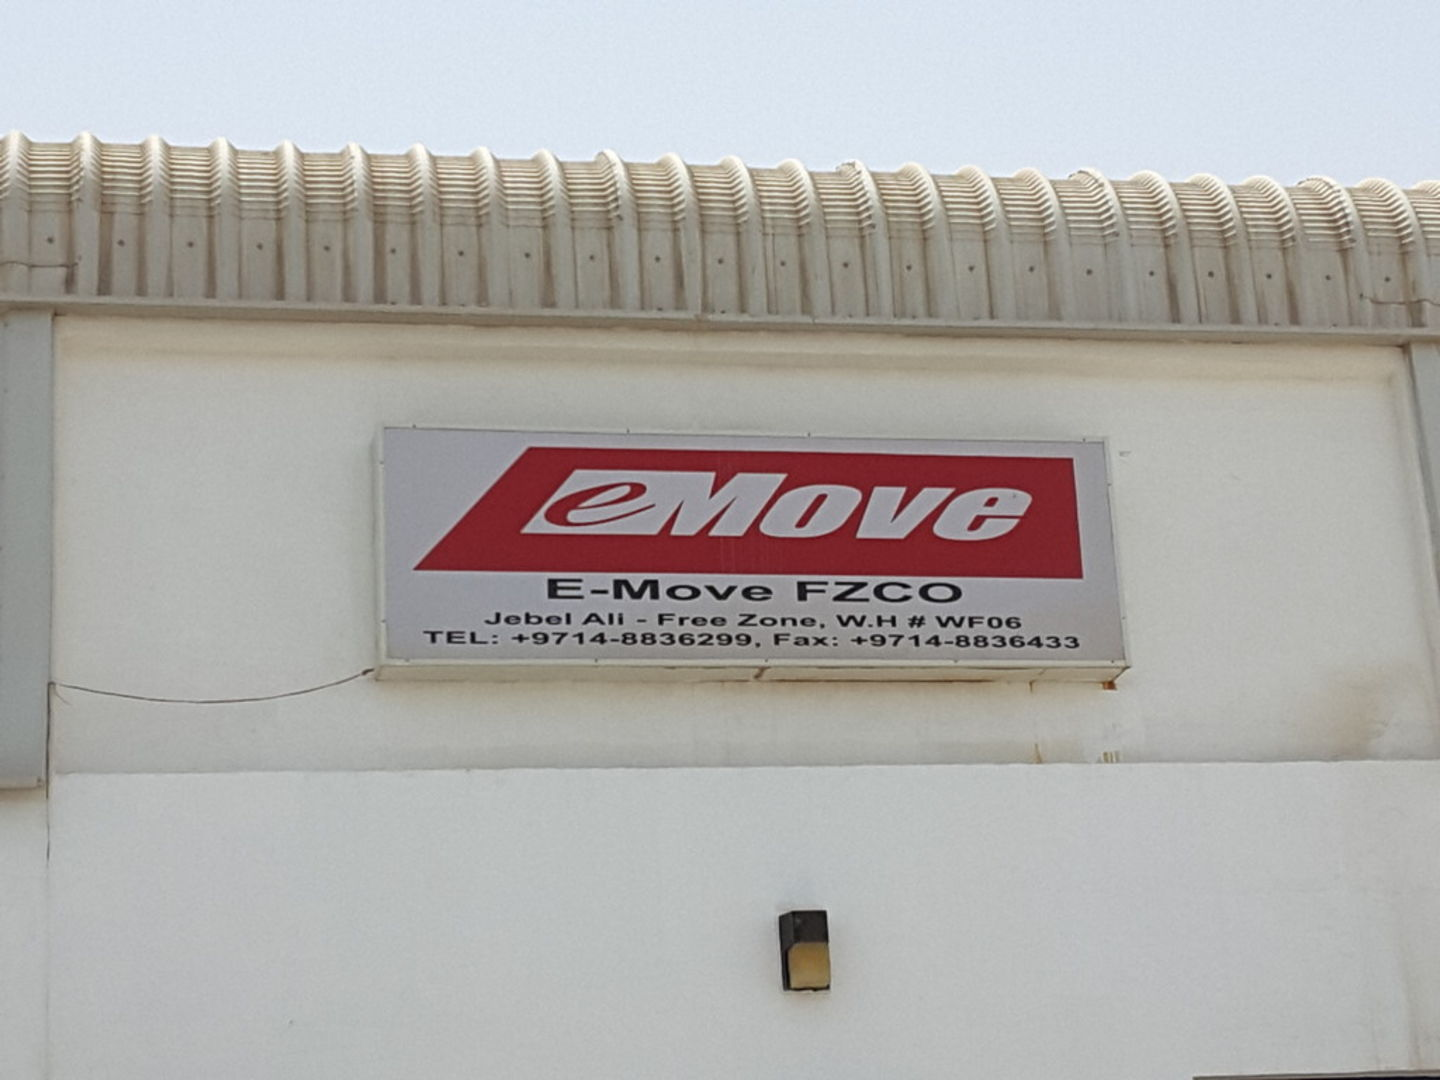 HiDubai-business-e-move-fzco-shipping-logistics-moving-storage-services-jebel-ali-free-zone-mena-jebel-ali-dubai-2